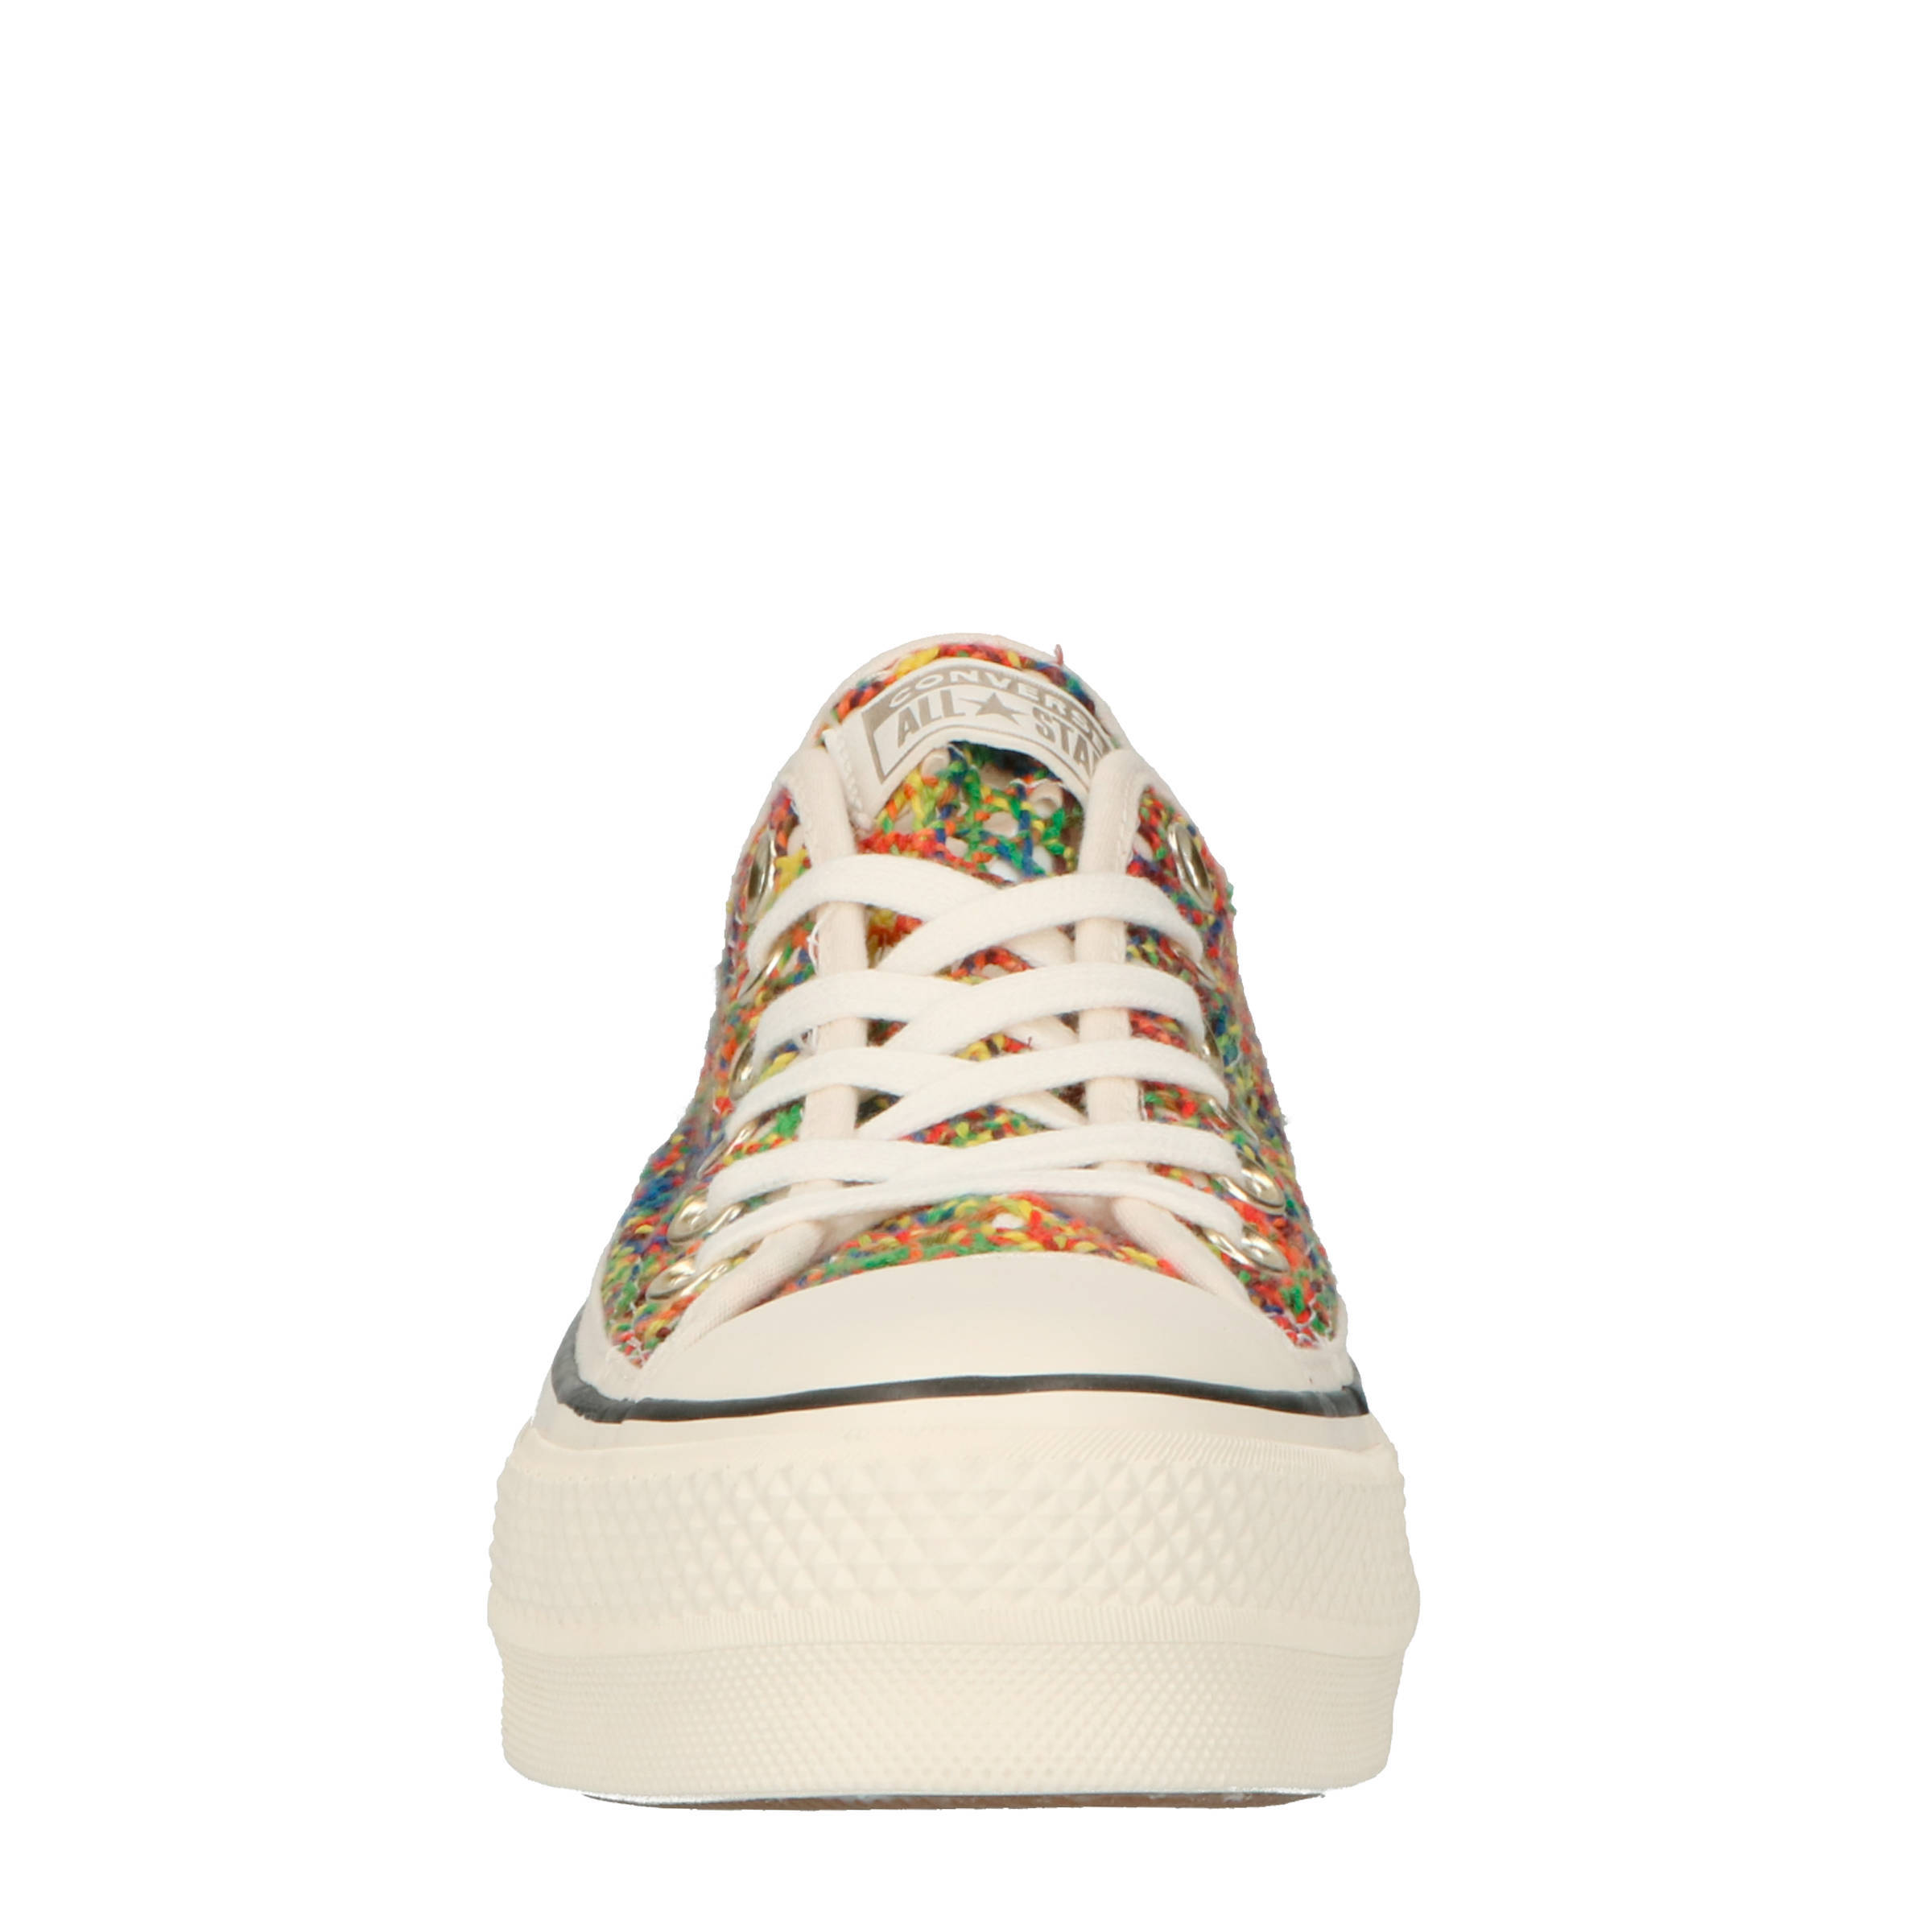 Taylor Ox Sneakers Lift Converse All Star WitWehkamp Chuck shCtQrdx